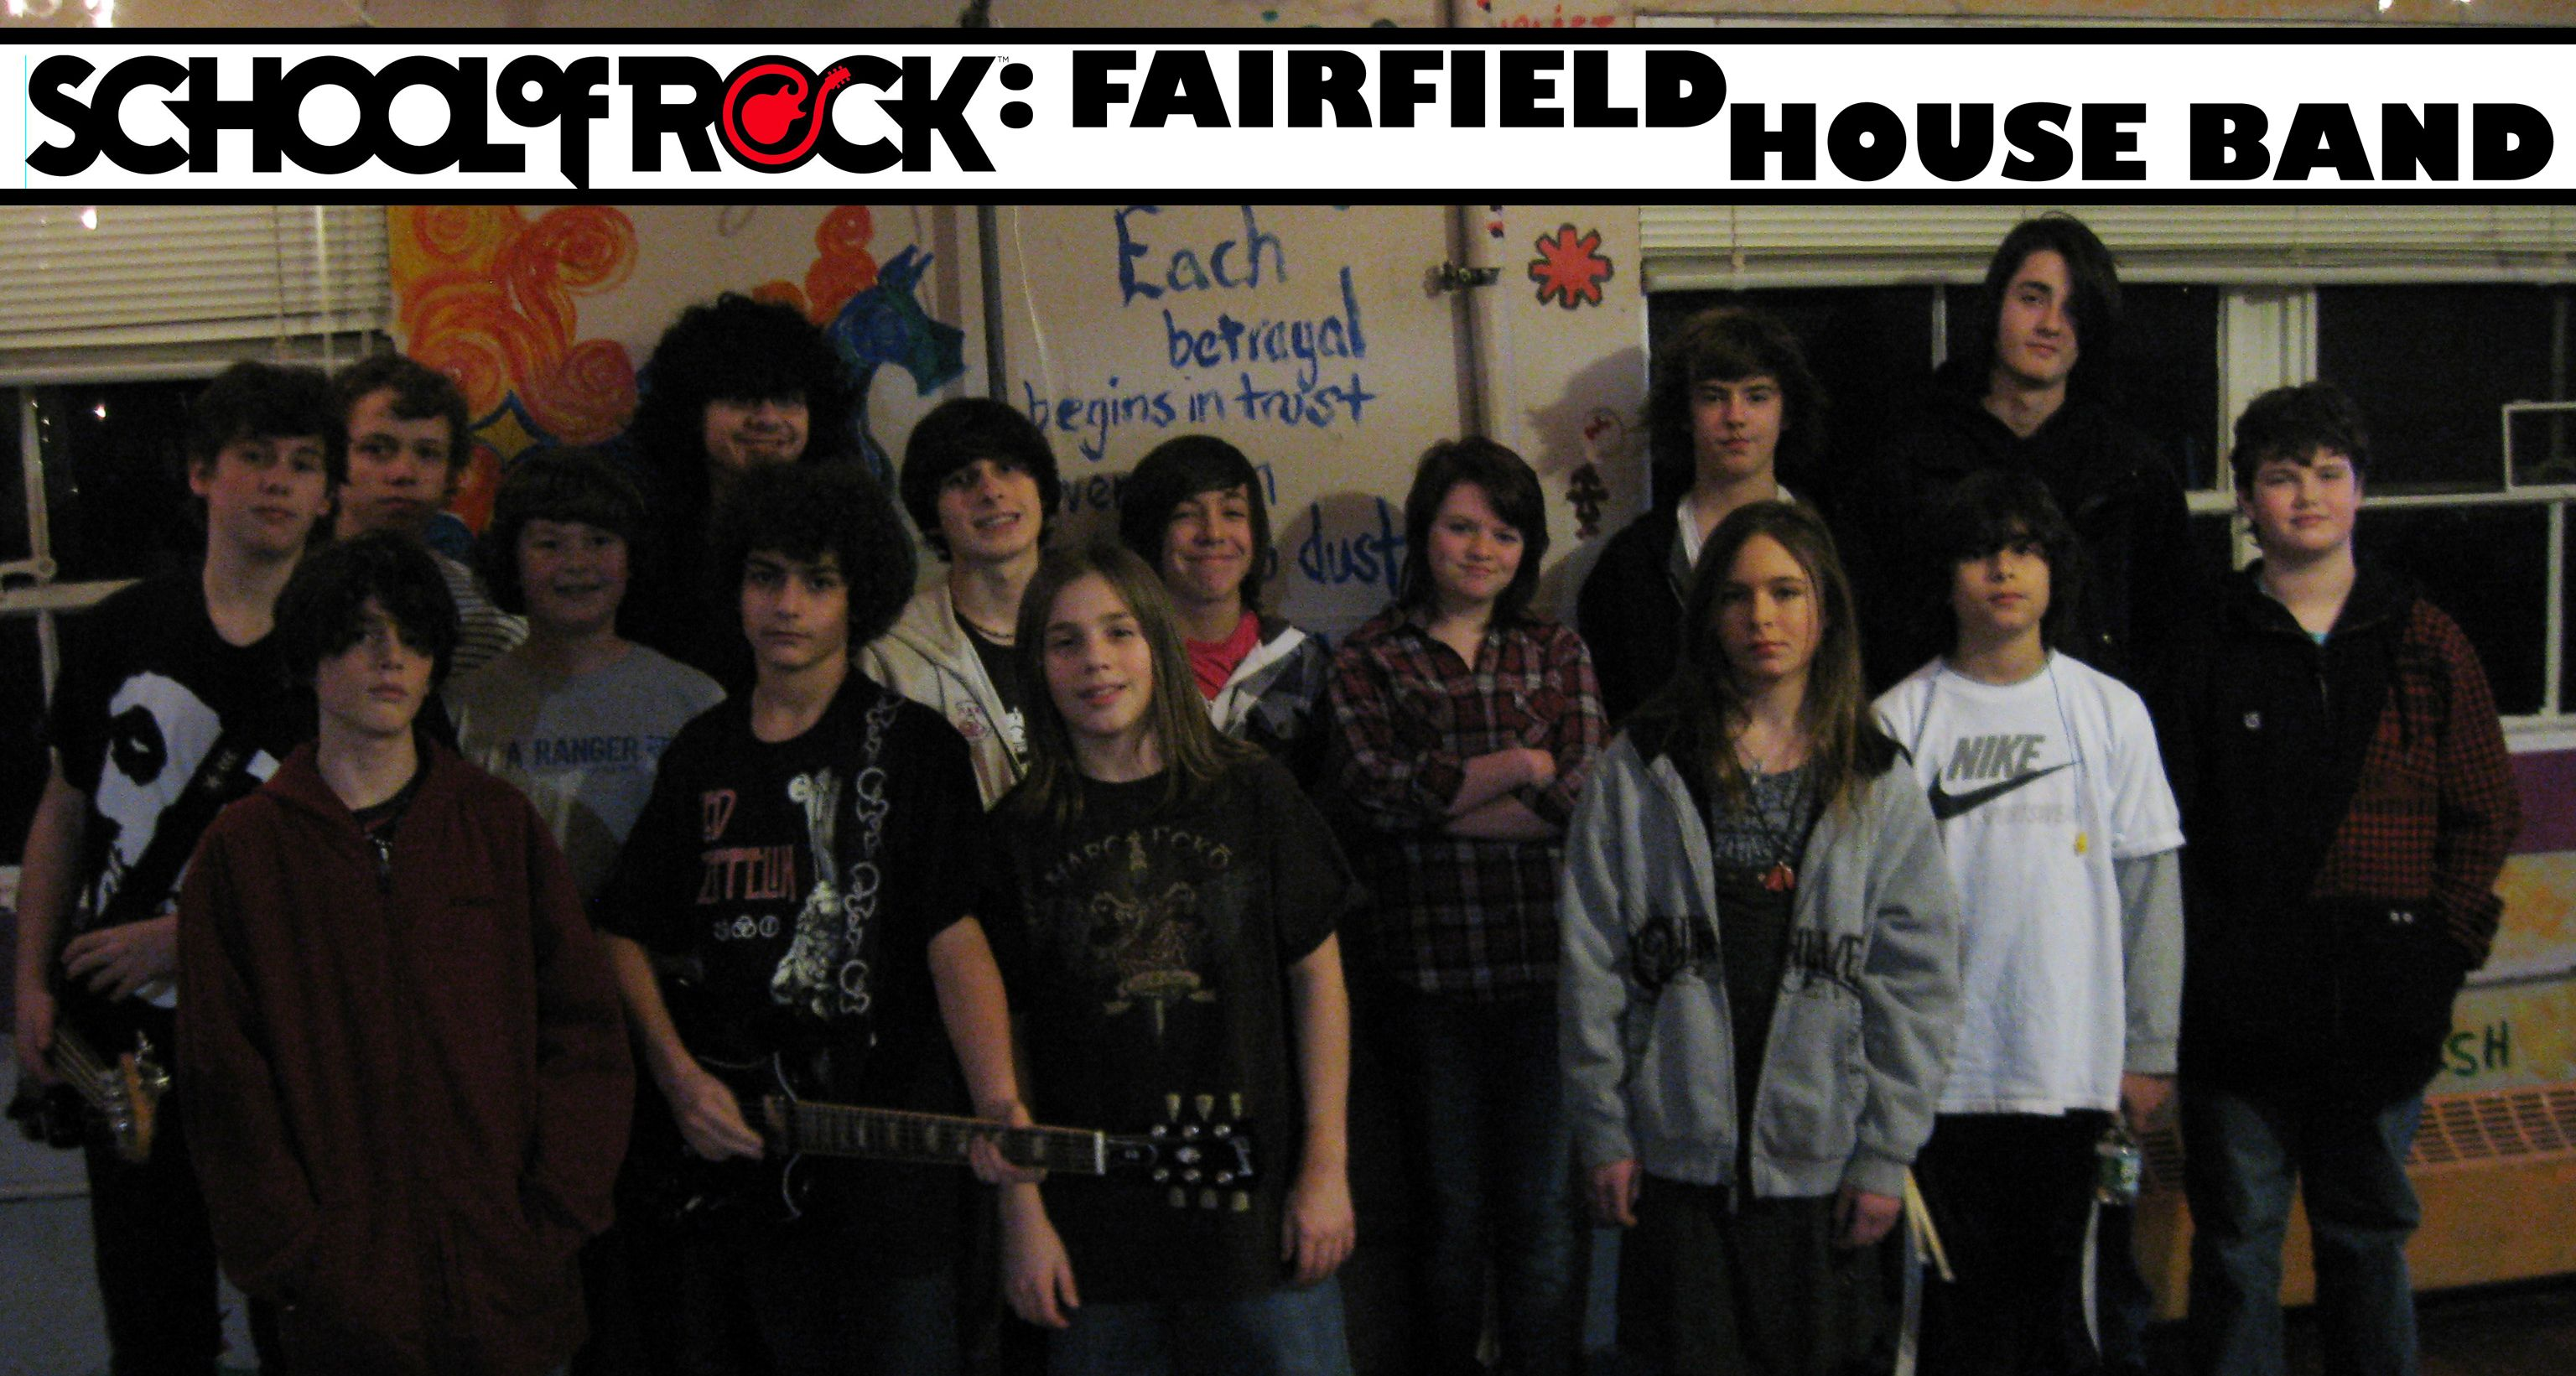 School of rock jack black quotes quotesgram - Bands Djs Bands Singers Songwriters School Of Rock Fairfieldafterdark Com